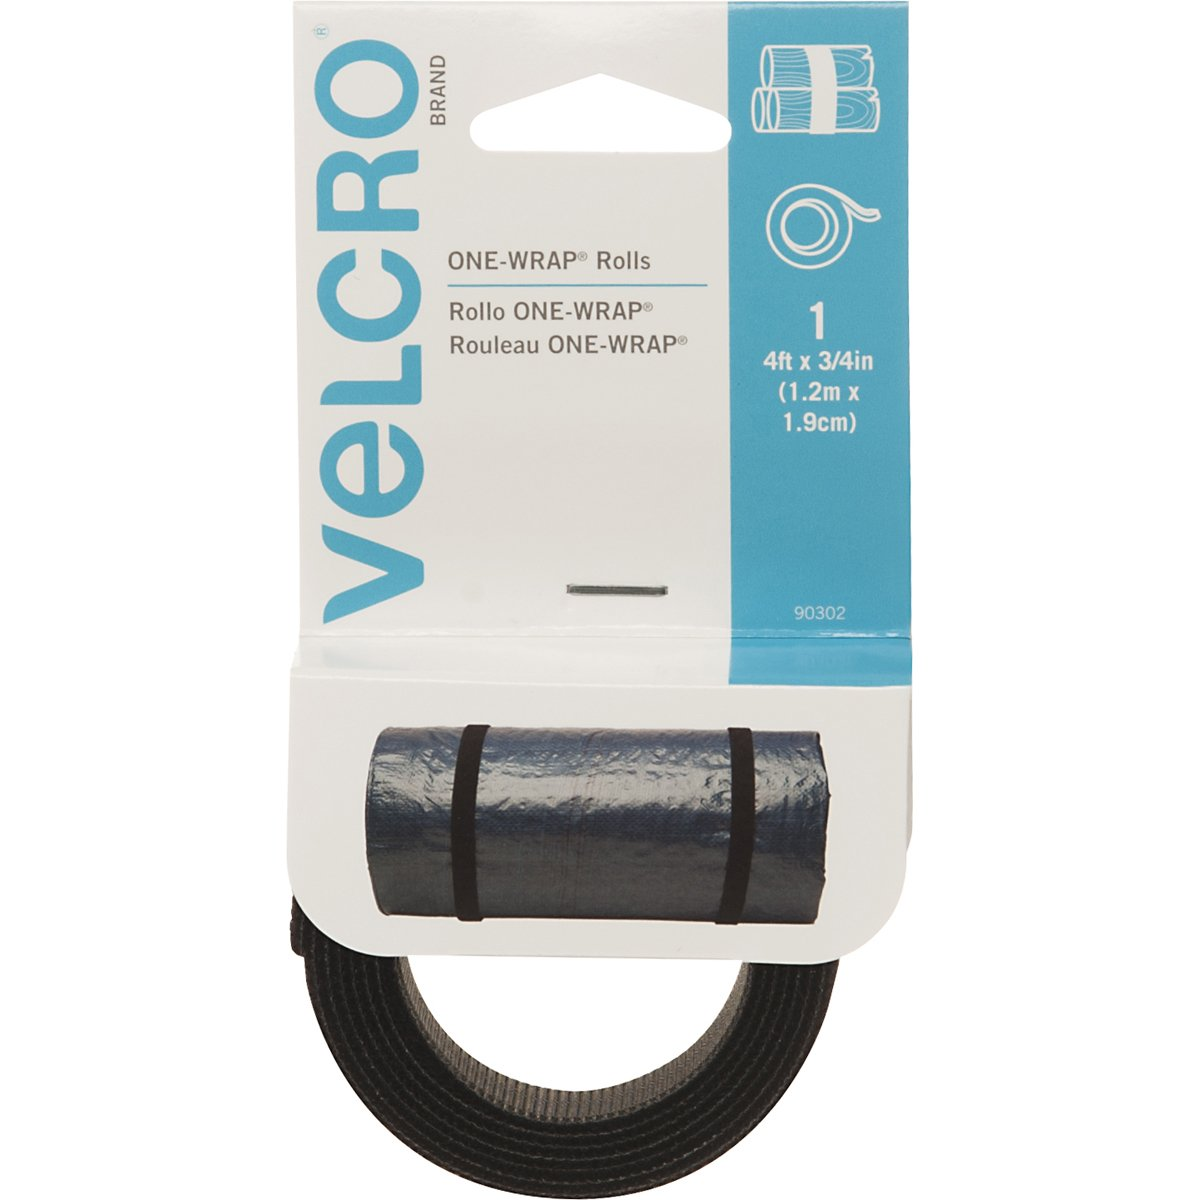 Velcro(r) Brand Fasteners One-Wrap Straps 3/4-InchX4-Inch, Black Notions - In Network 90302